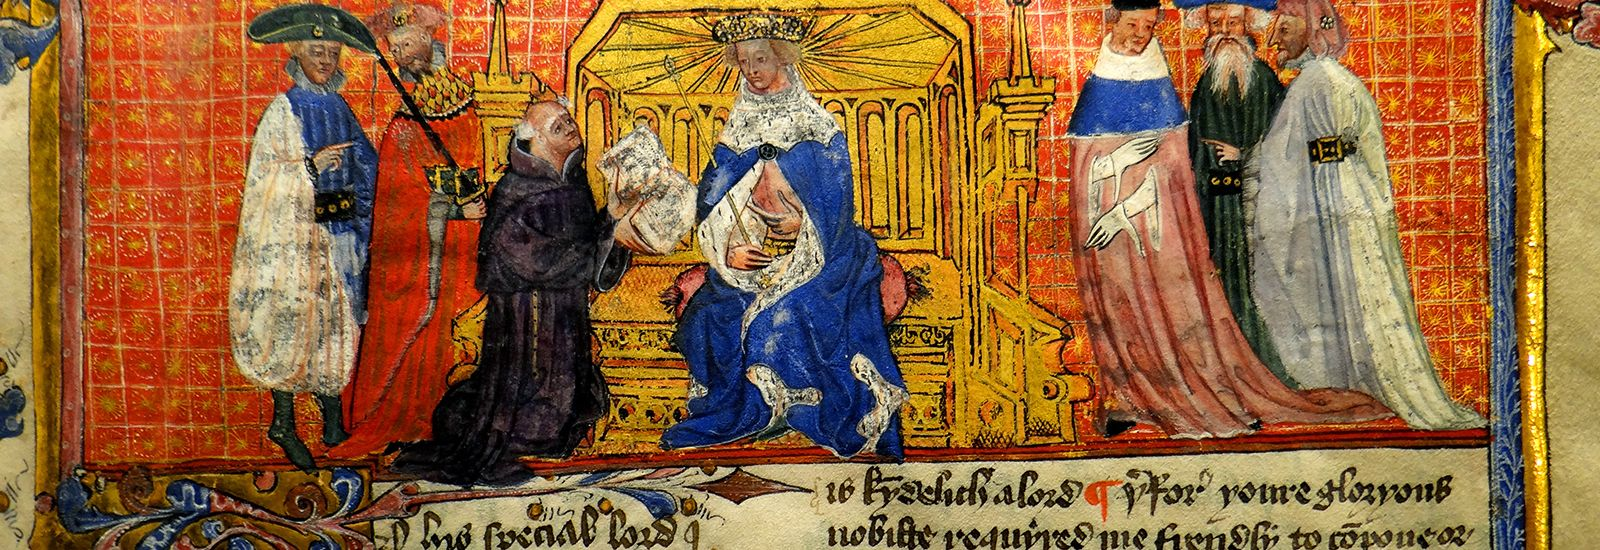 A close up of a painting manuscript showing 6 figures